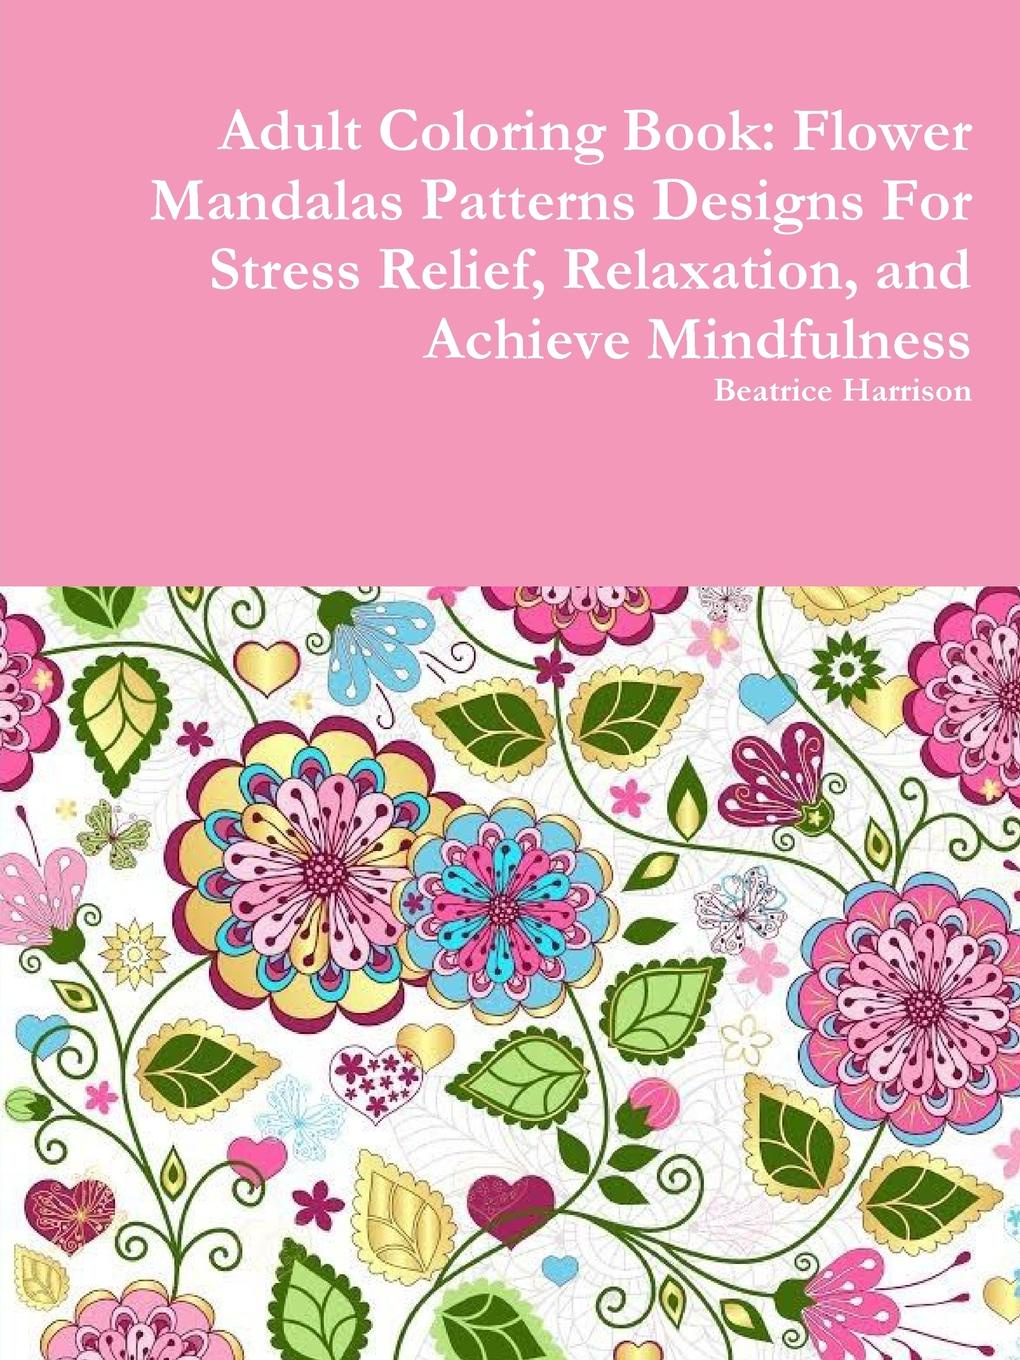 Beatrice Harrison Adult Coloring Book. Flower Mandalas Patterns Designs For Stress Relief, Relaxation, and Achieve Mindfulness jasmine taylor flower coloring an inspirational coloring book for adults